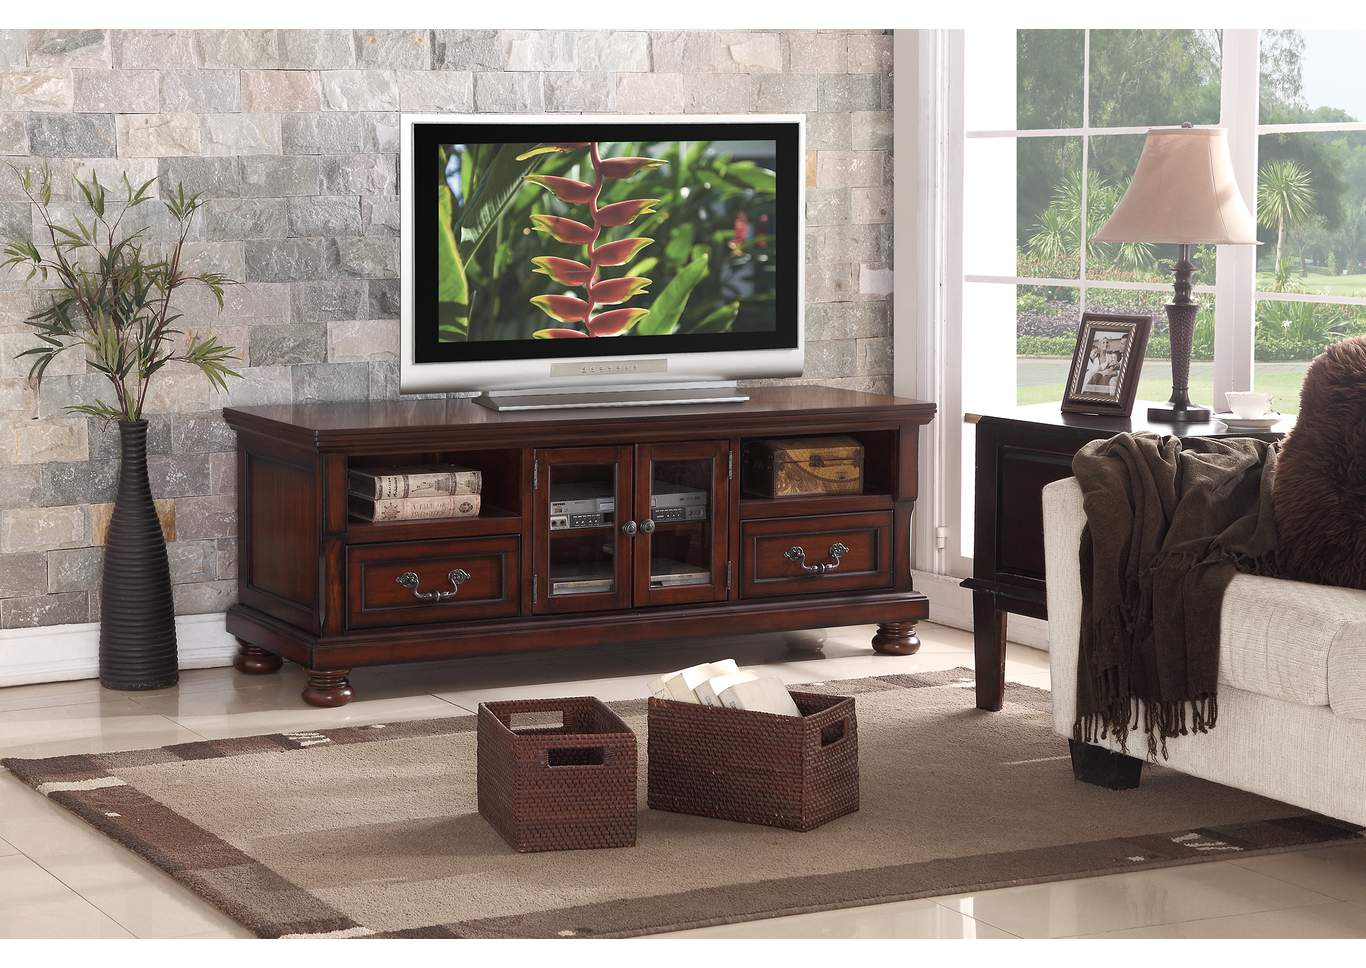 Cherry TV Stand,Poundex